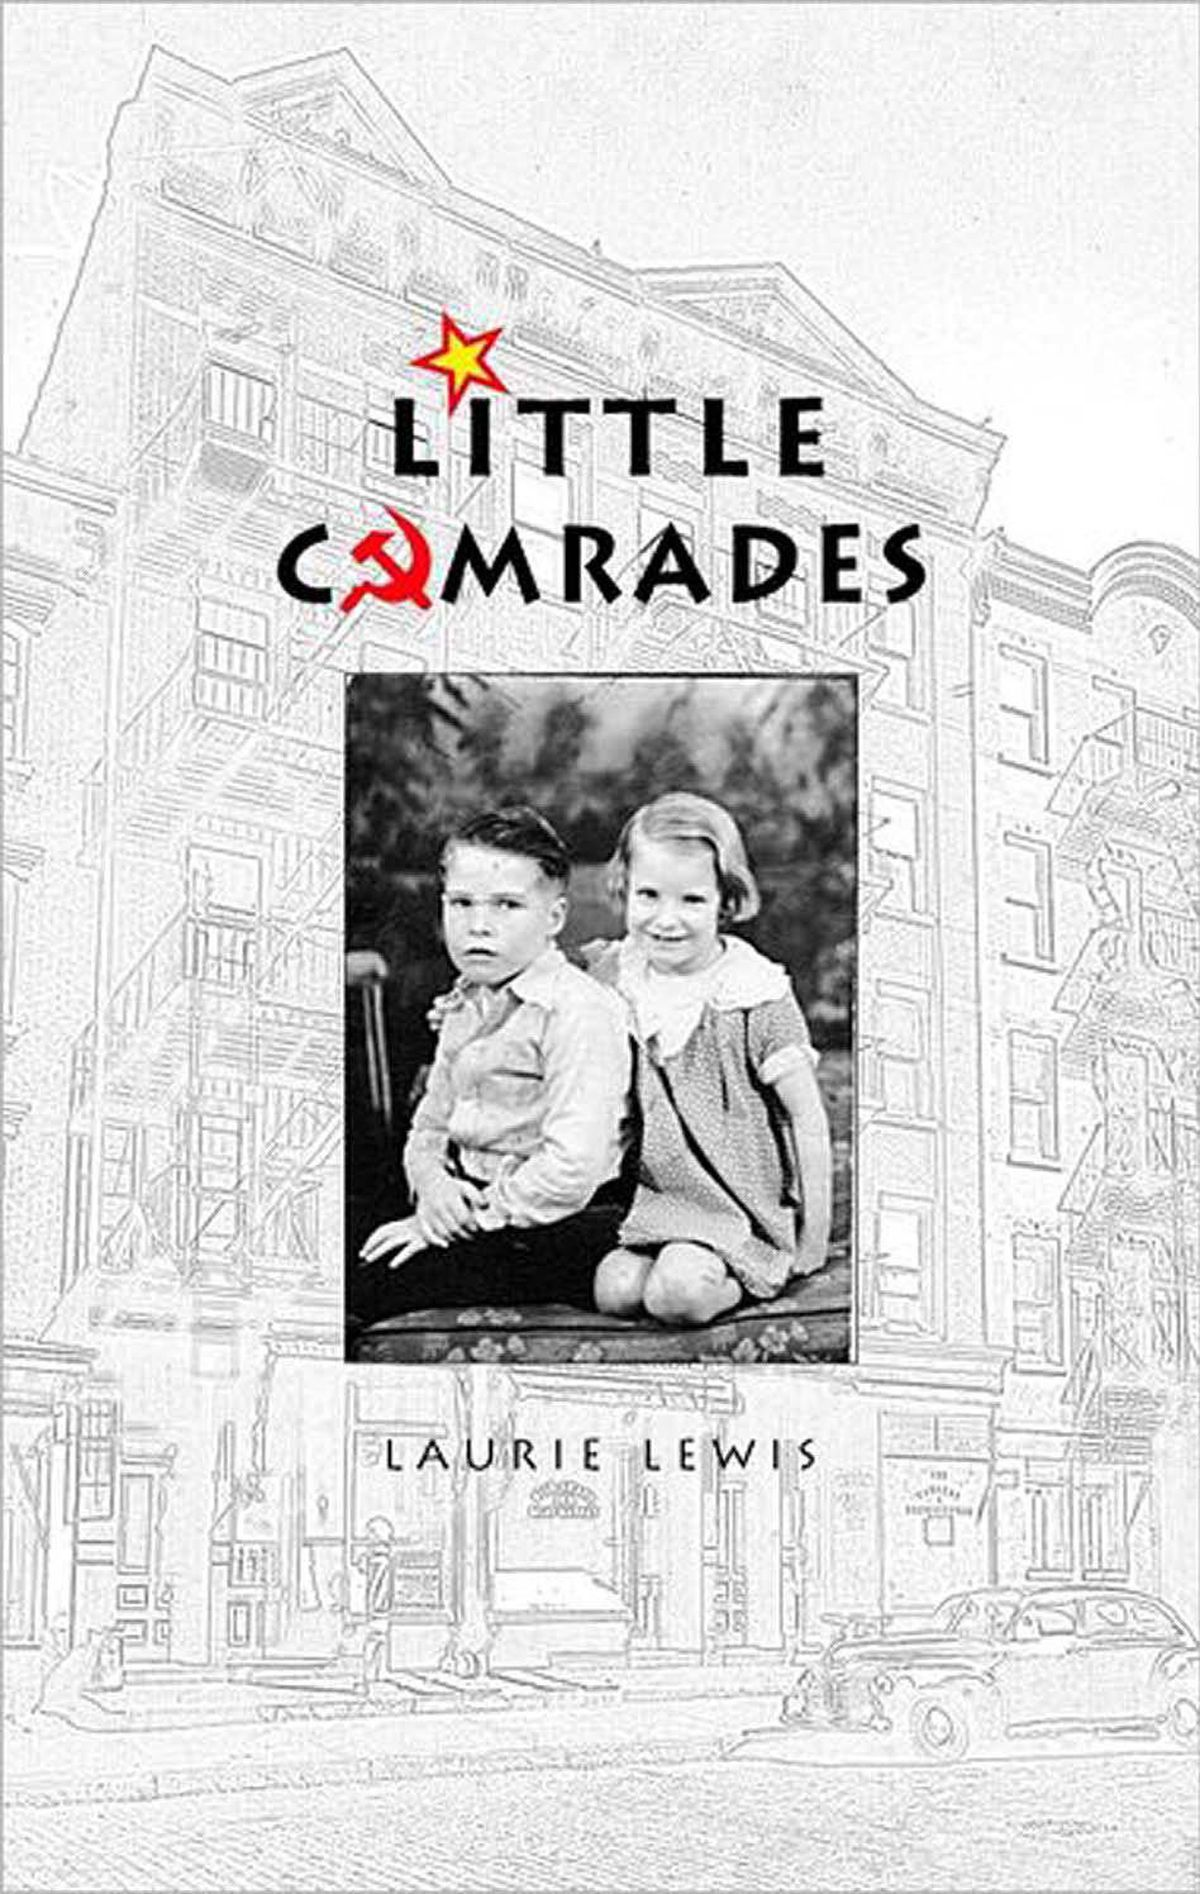 LITTLE COMRADES By Laurie Lewis (Porcupine's Quill) In her first book, Lewis, now 80, tells of being raised in Calgary by parents who were members of the Communist Party, though her father was a drunk and abusive. Demonstrating a talent for ironic juxtapositions and uncanny observational skills, she brings the Great Depression and Second World War unforgettably to life. – Elisabeth Harvor